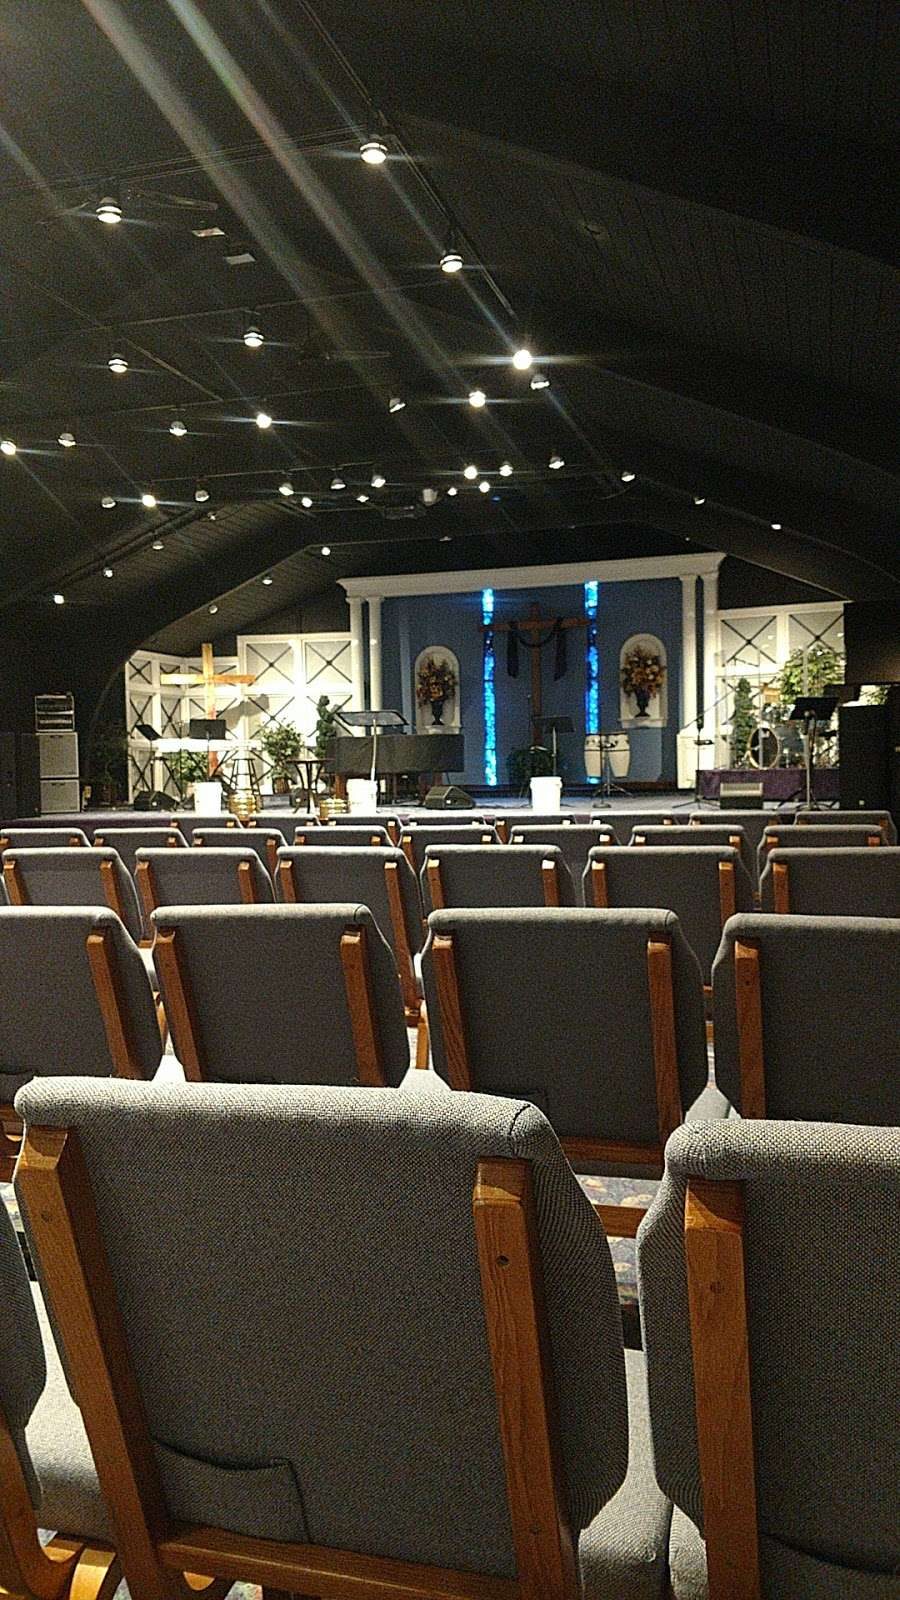 Church On the Rock - church  | Photo 3 of 10 | Address: 649 Old Mill Rd, Millersville, MD 21108, USA | Phone: (410) 987-4714